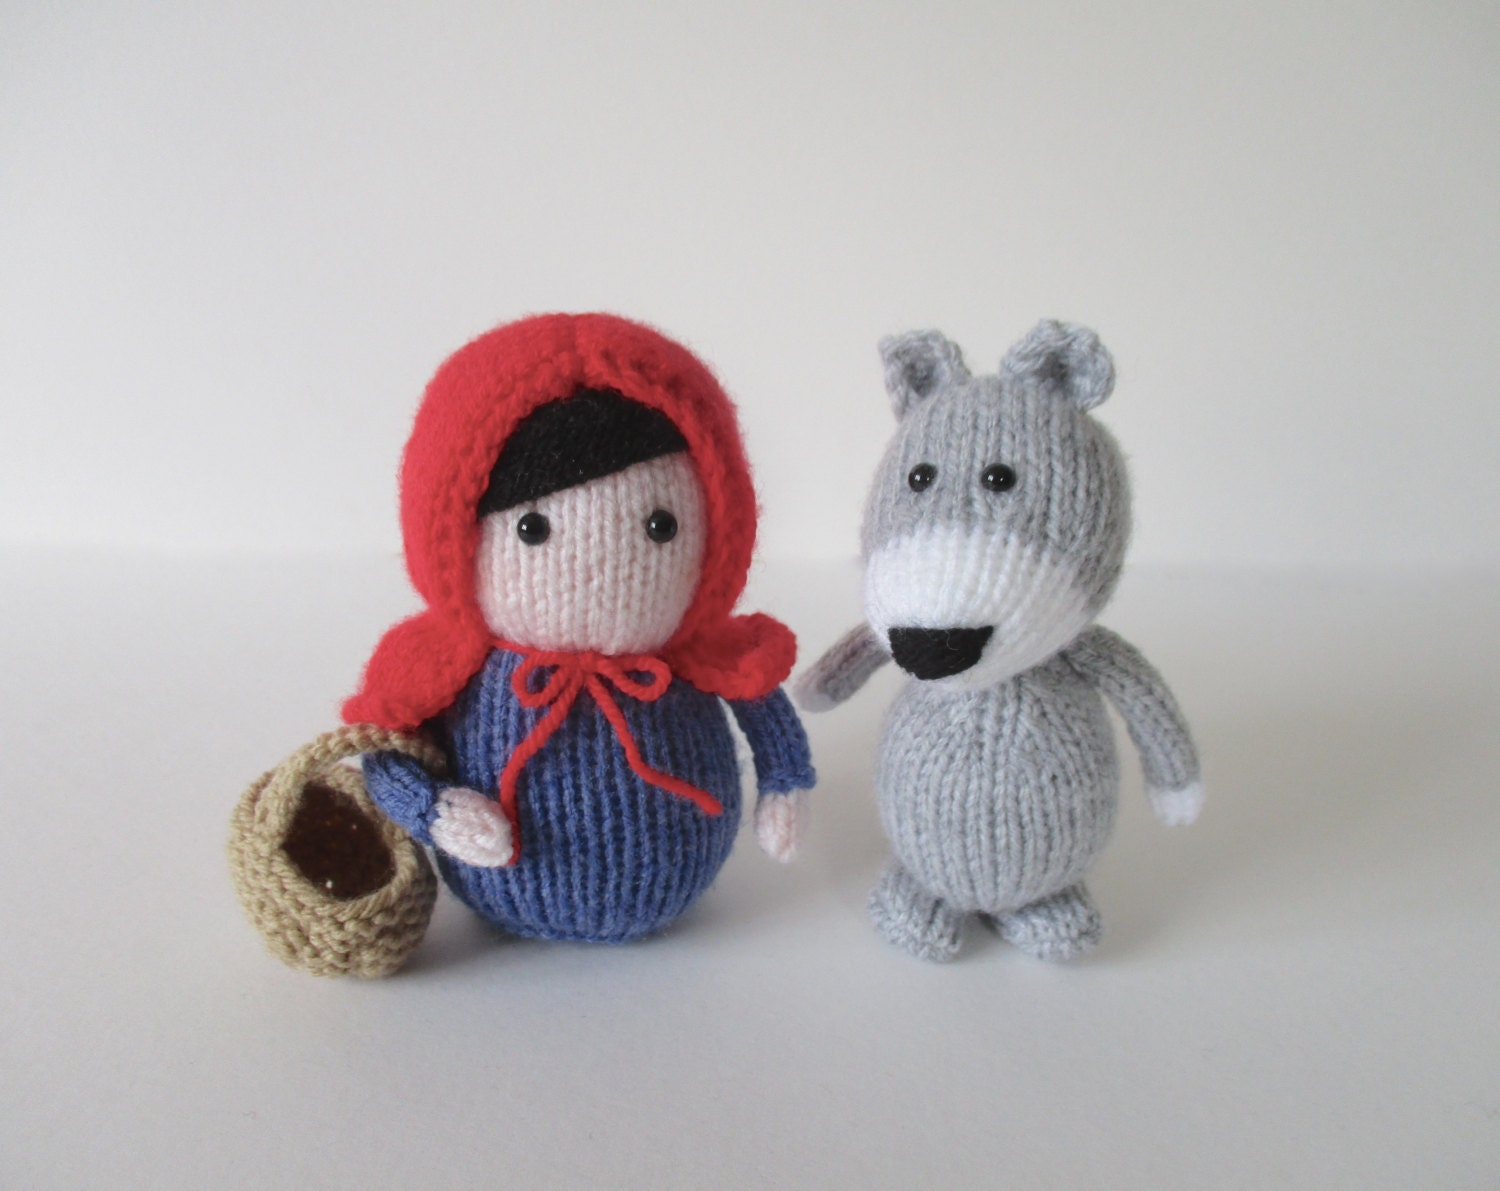 Knitting Pattern For Little Red Riding Hood Doll : Red Riding Hood toy knitting patterns by fluffandfuzz on Etsy